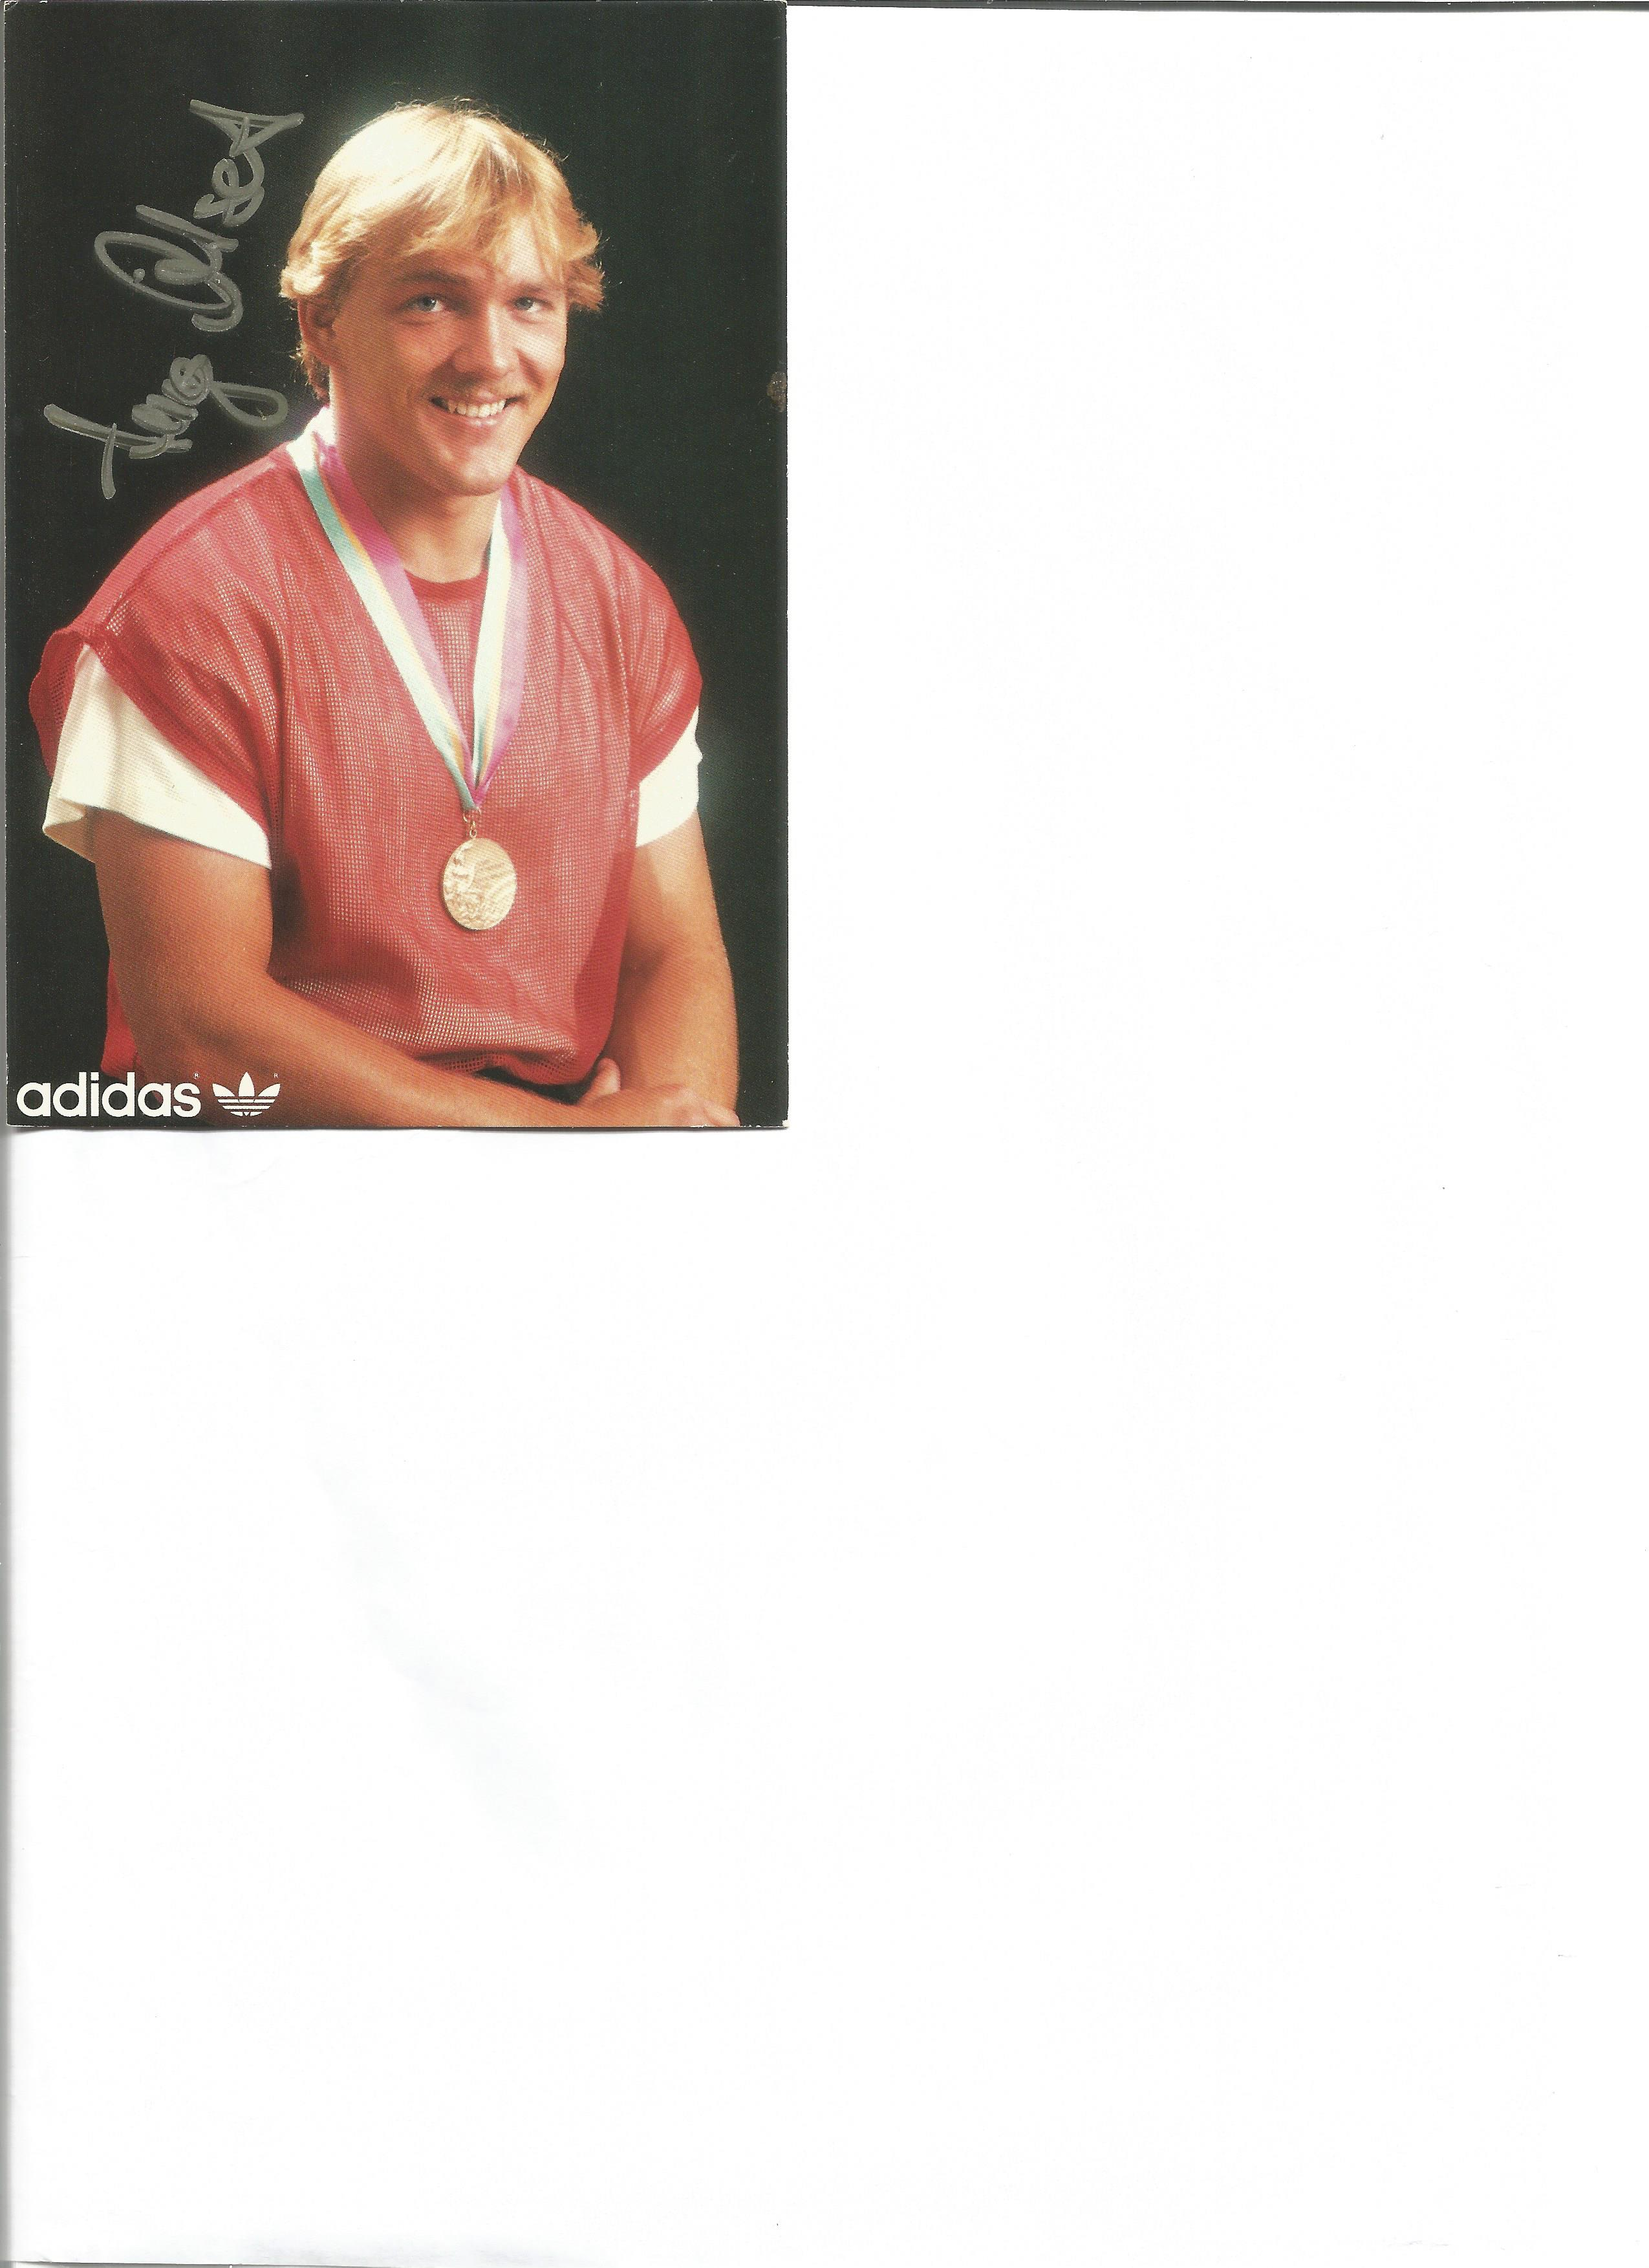 Lot 176 - Olympics Hugo Dietsche signed 6 x 4 inch colour adidas promo card. Hugo Dietsche born 31 March